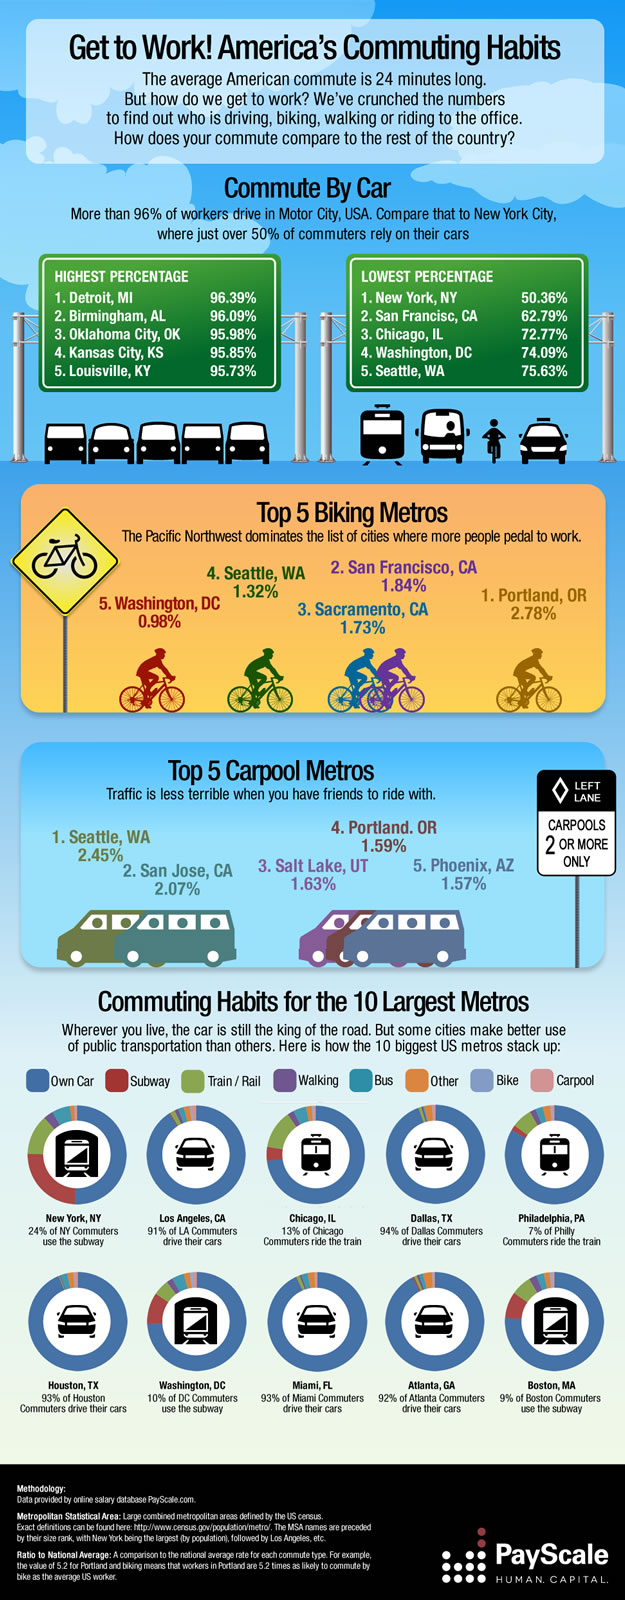 America's Commuting Habits